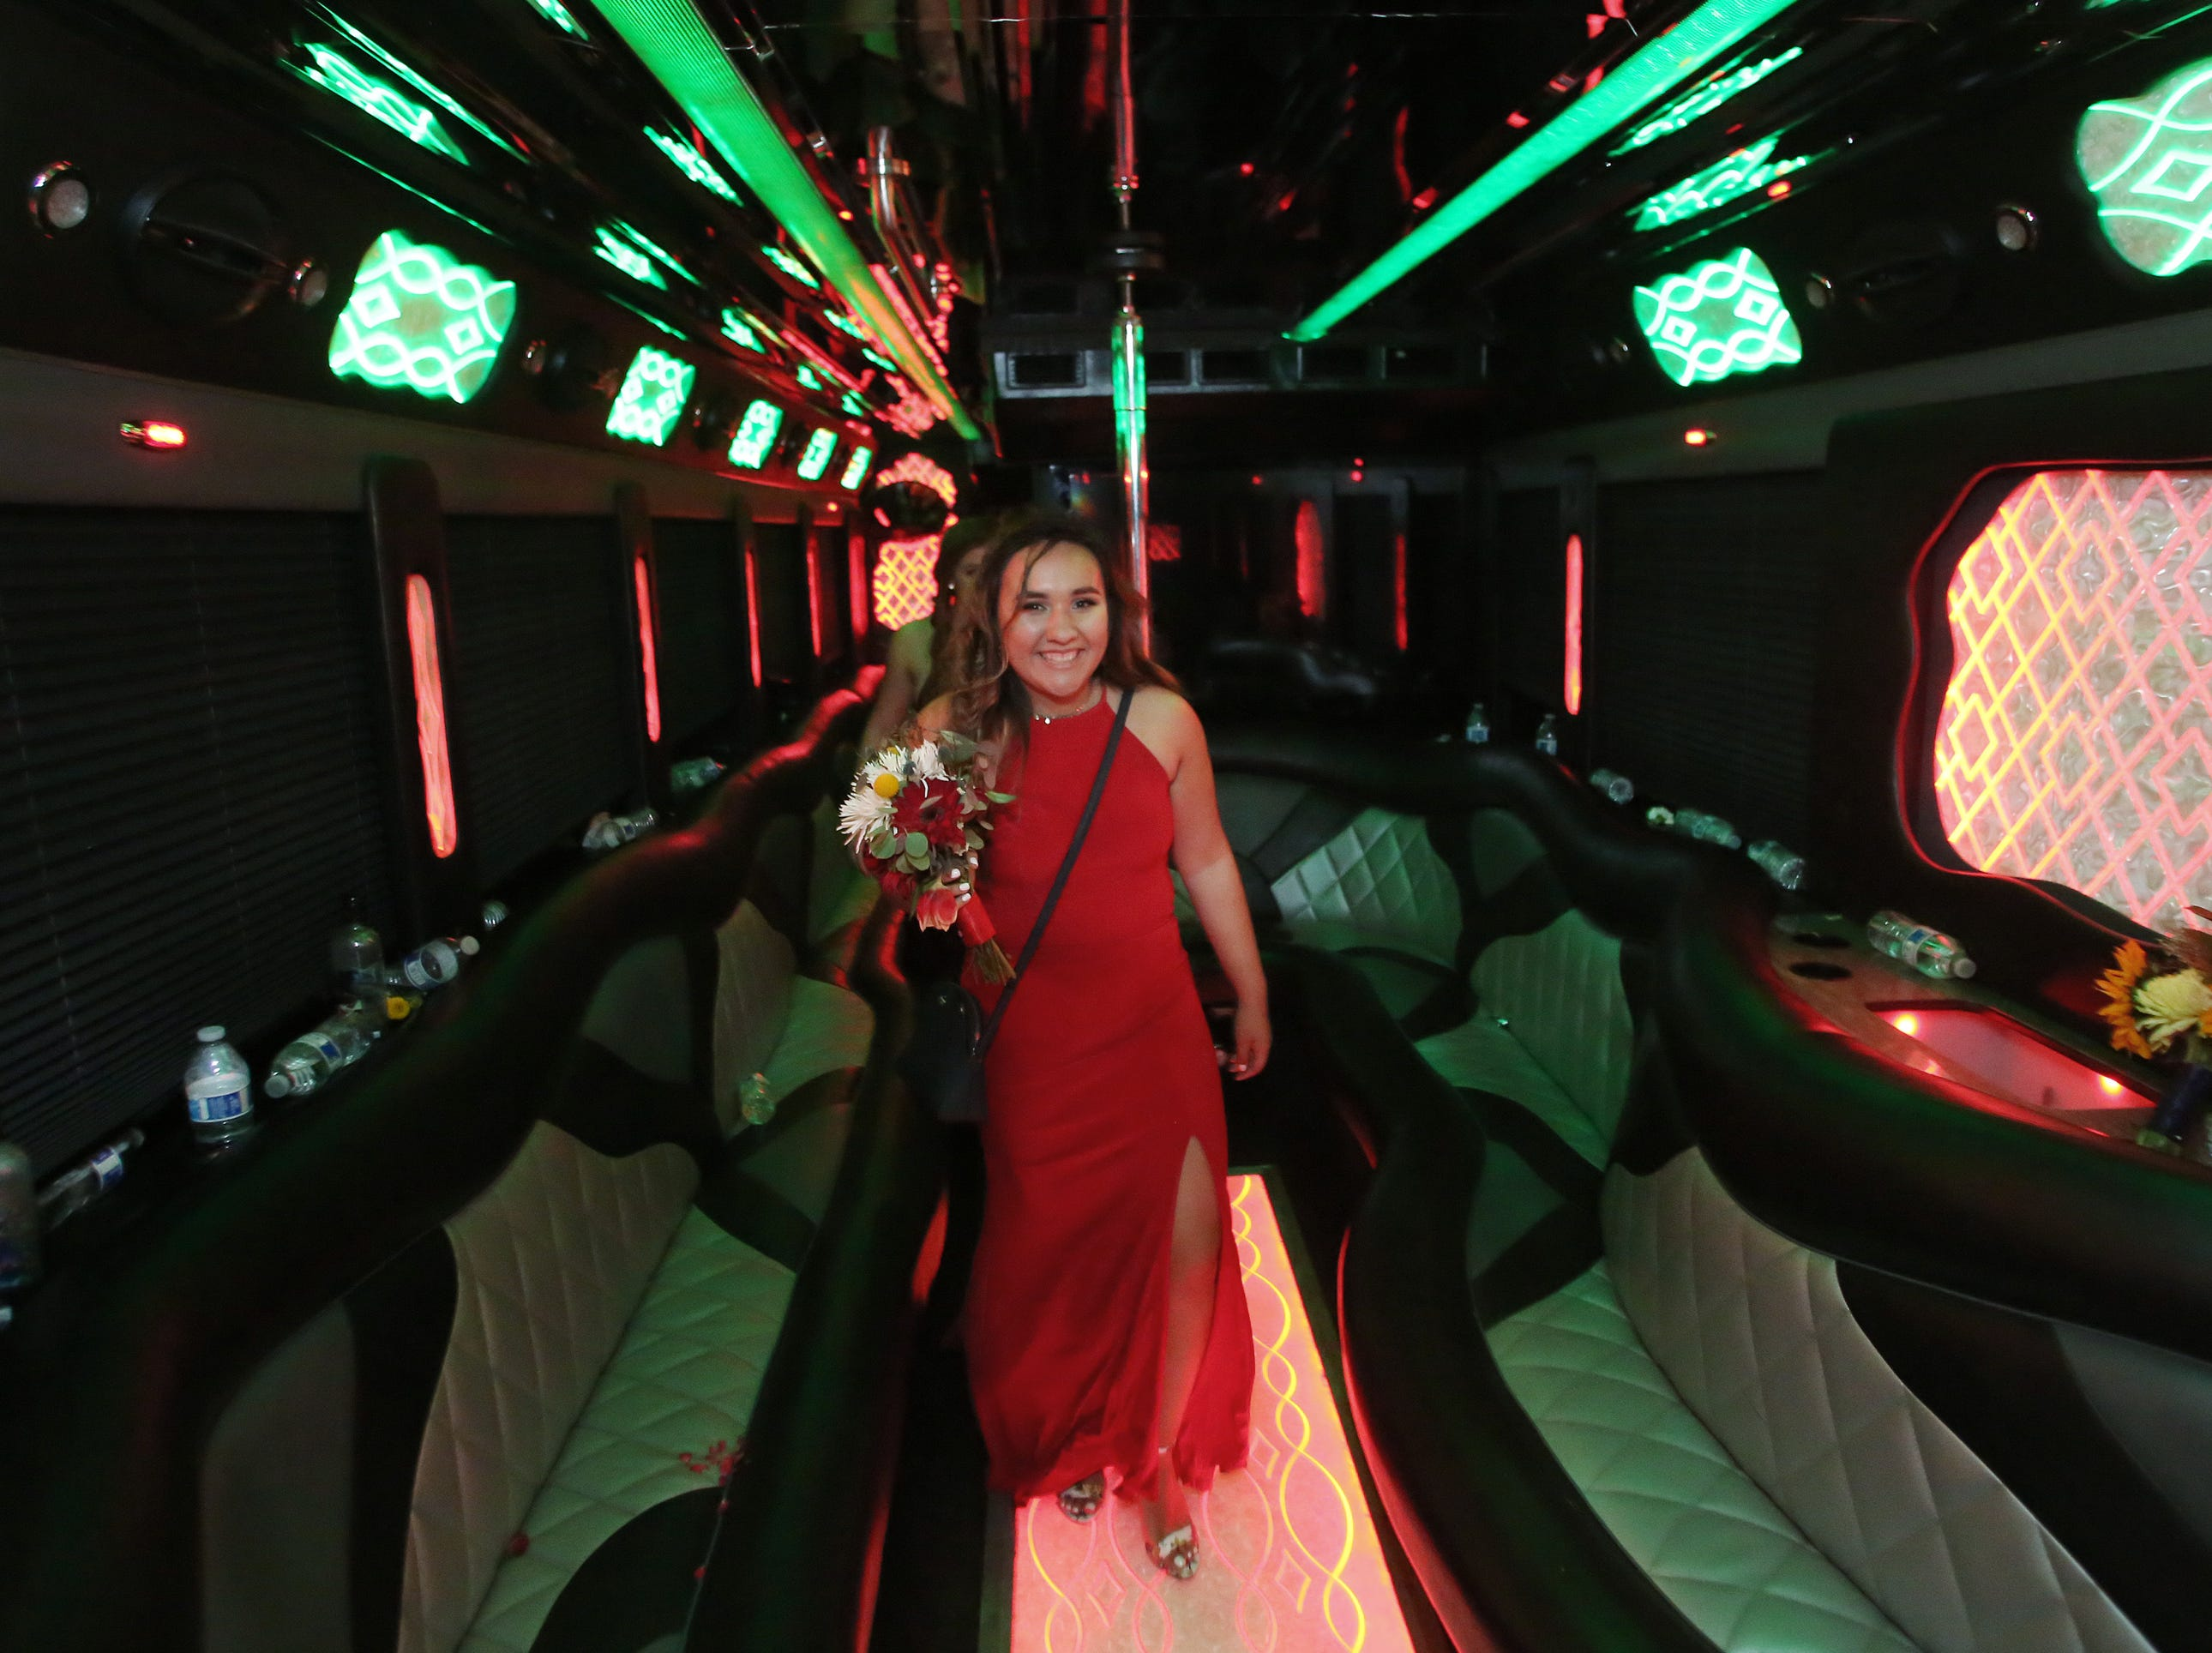 Lexe Cortez leaves the party bus before joining friends at the Exeter Union High School prom Saturday, May 4, 2019 in Woodlake, Calif.